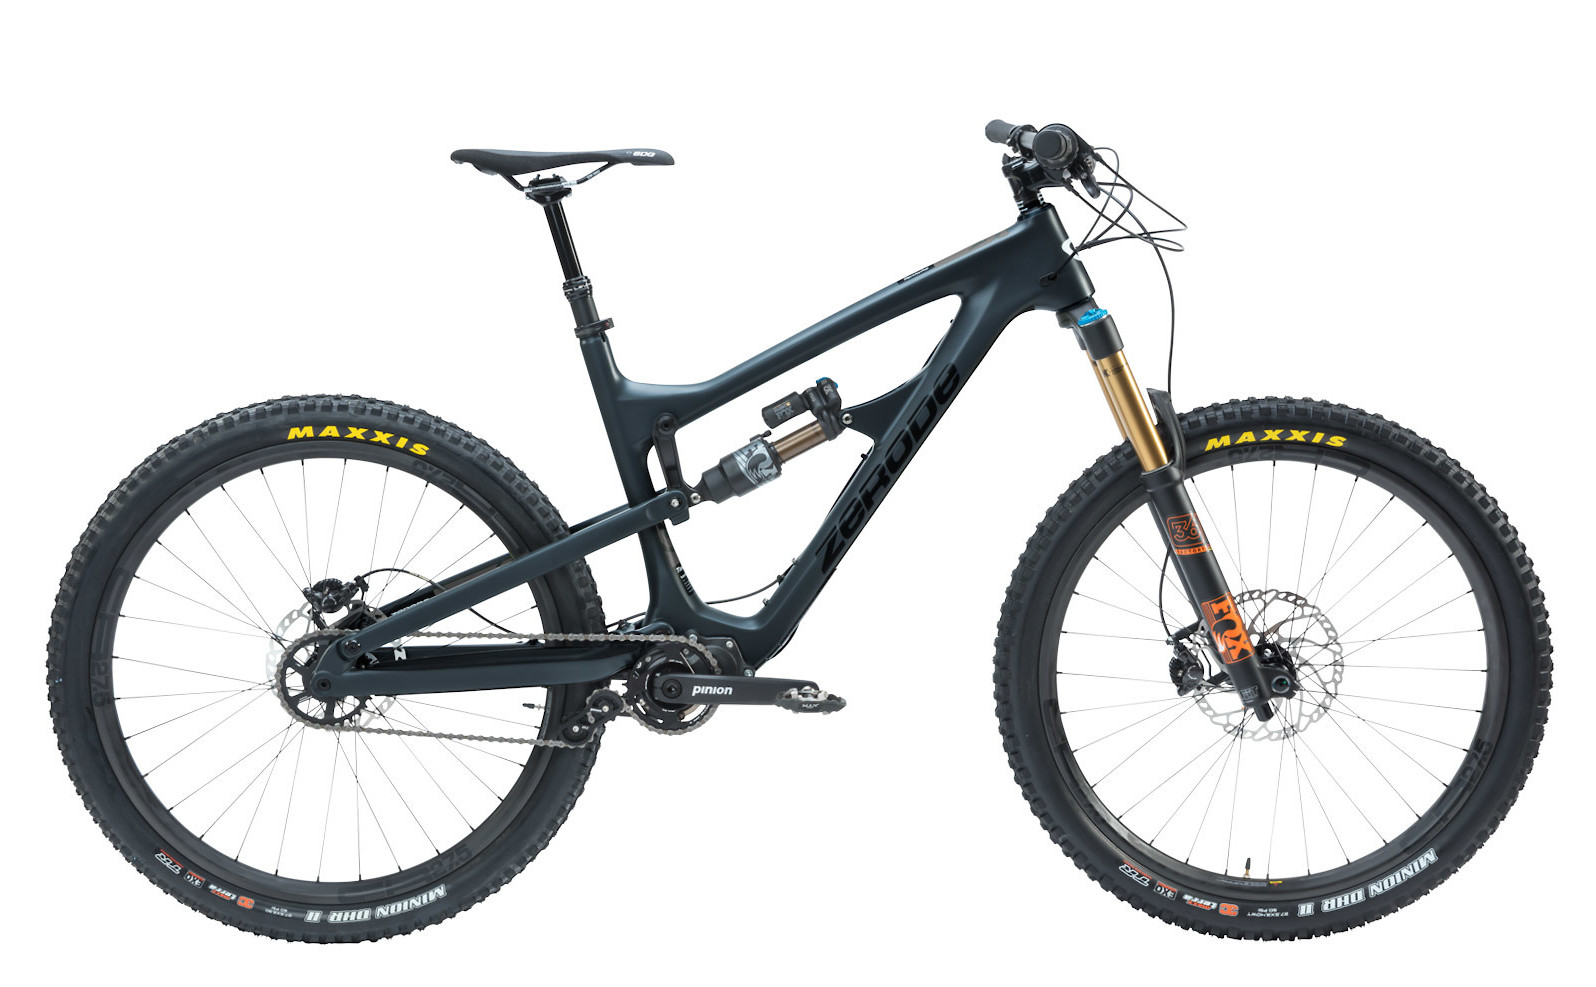 2019 Zerode Taniwha Trail Bike (Signature build shown in photos)